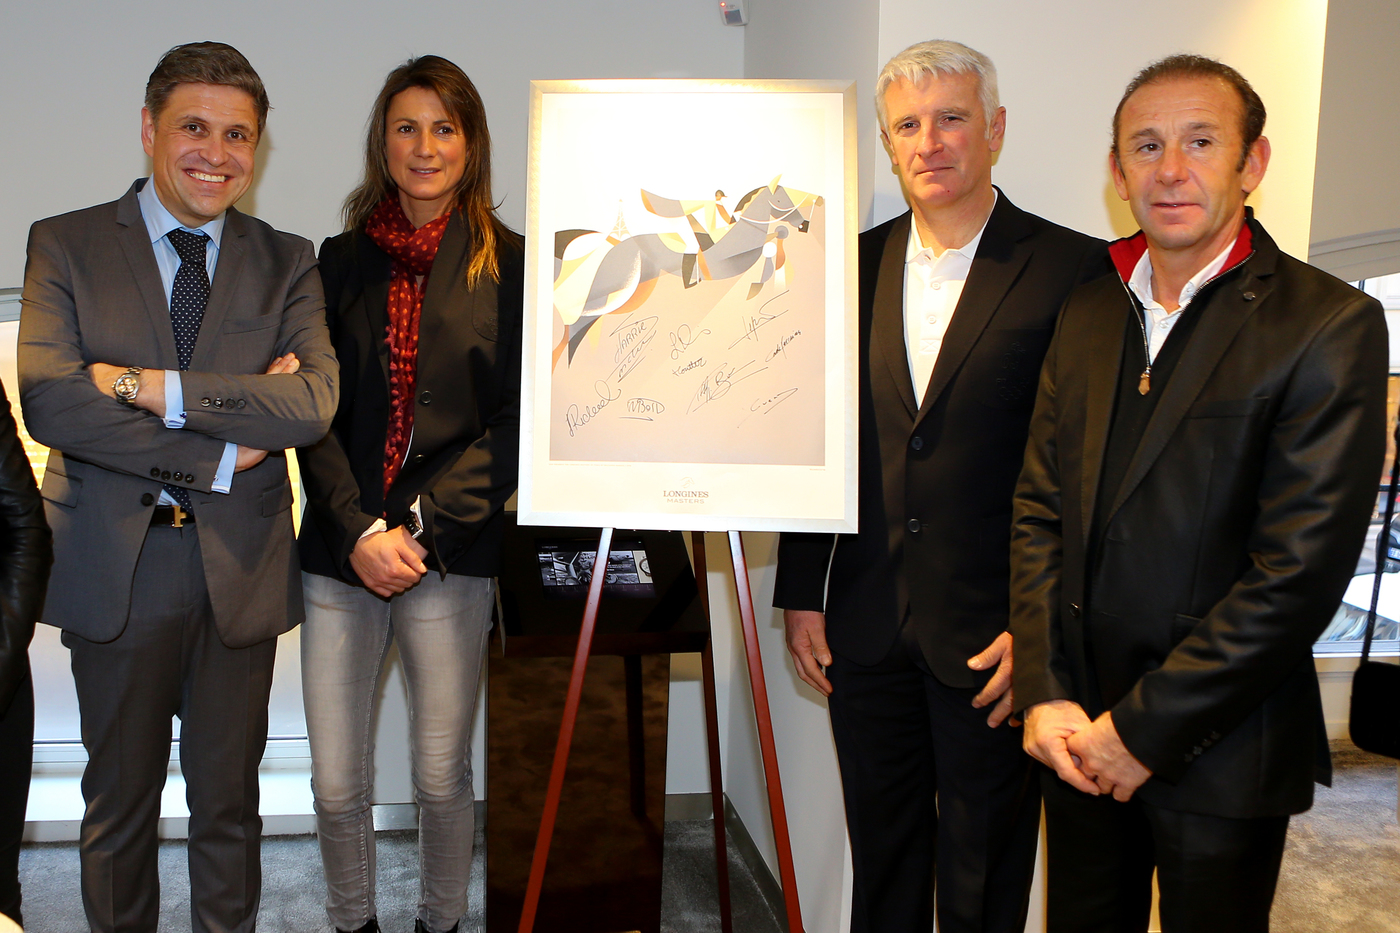 Longines Corporate Event: Longines presented its latest equestrian watch in its new Parisian boutique in the presence of show jumping champions 7